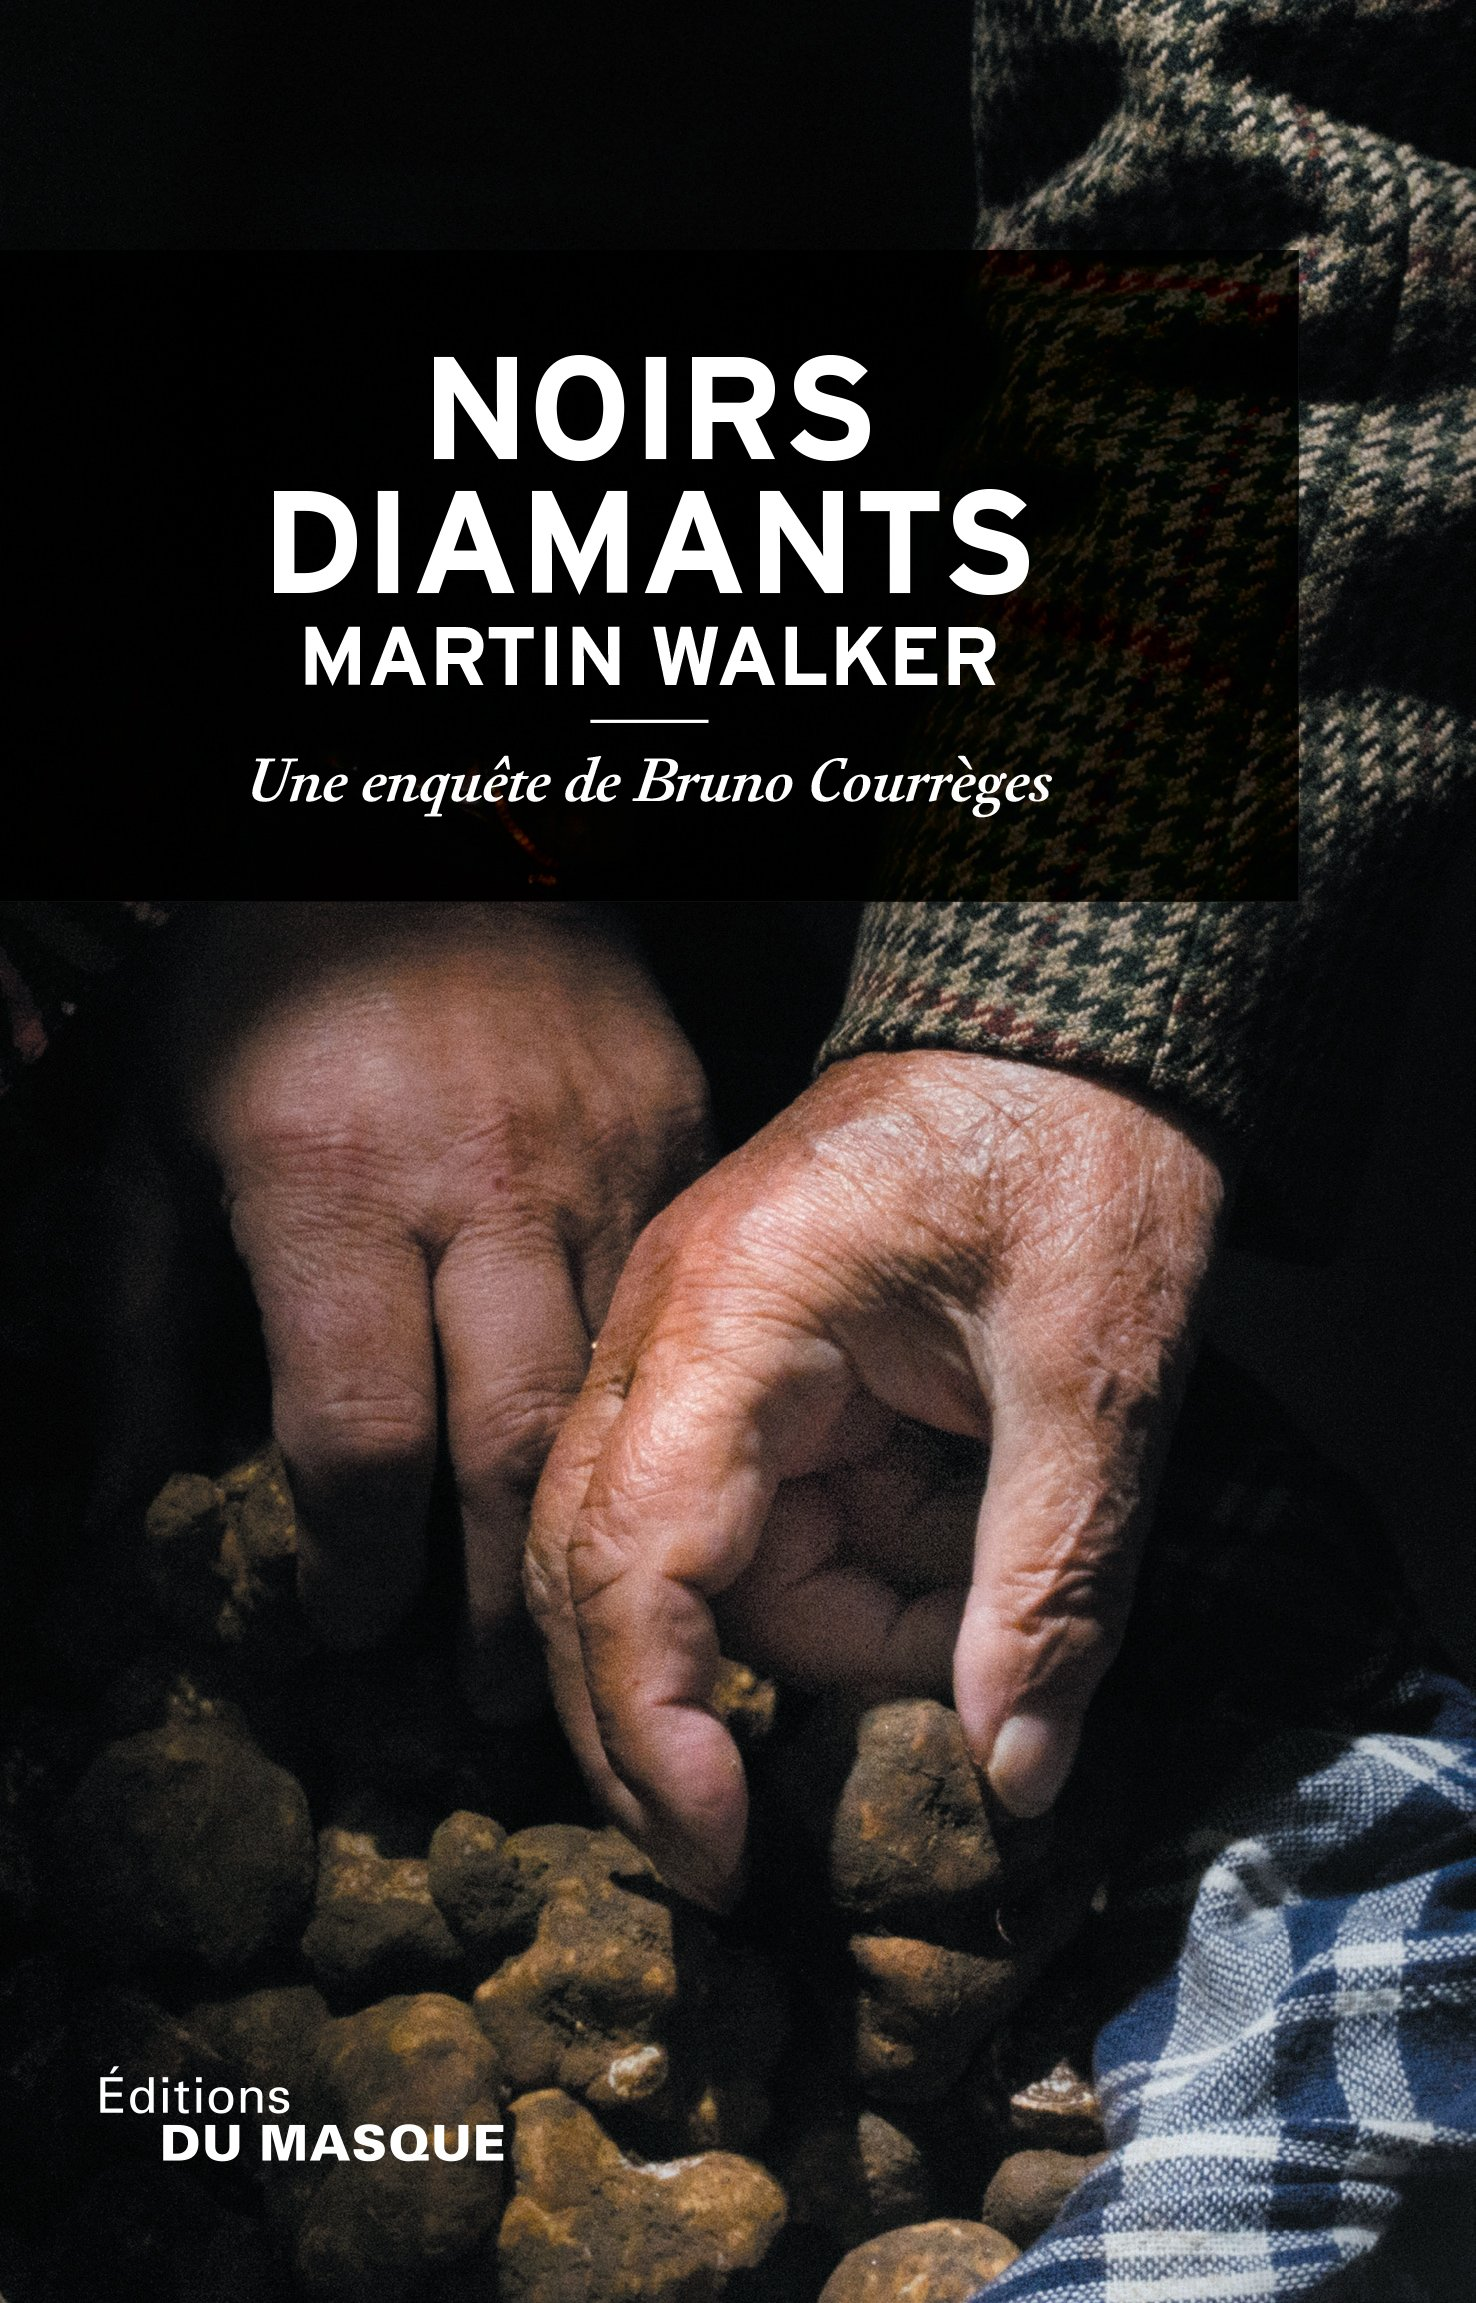 Noirs diamants - Martin Walker